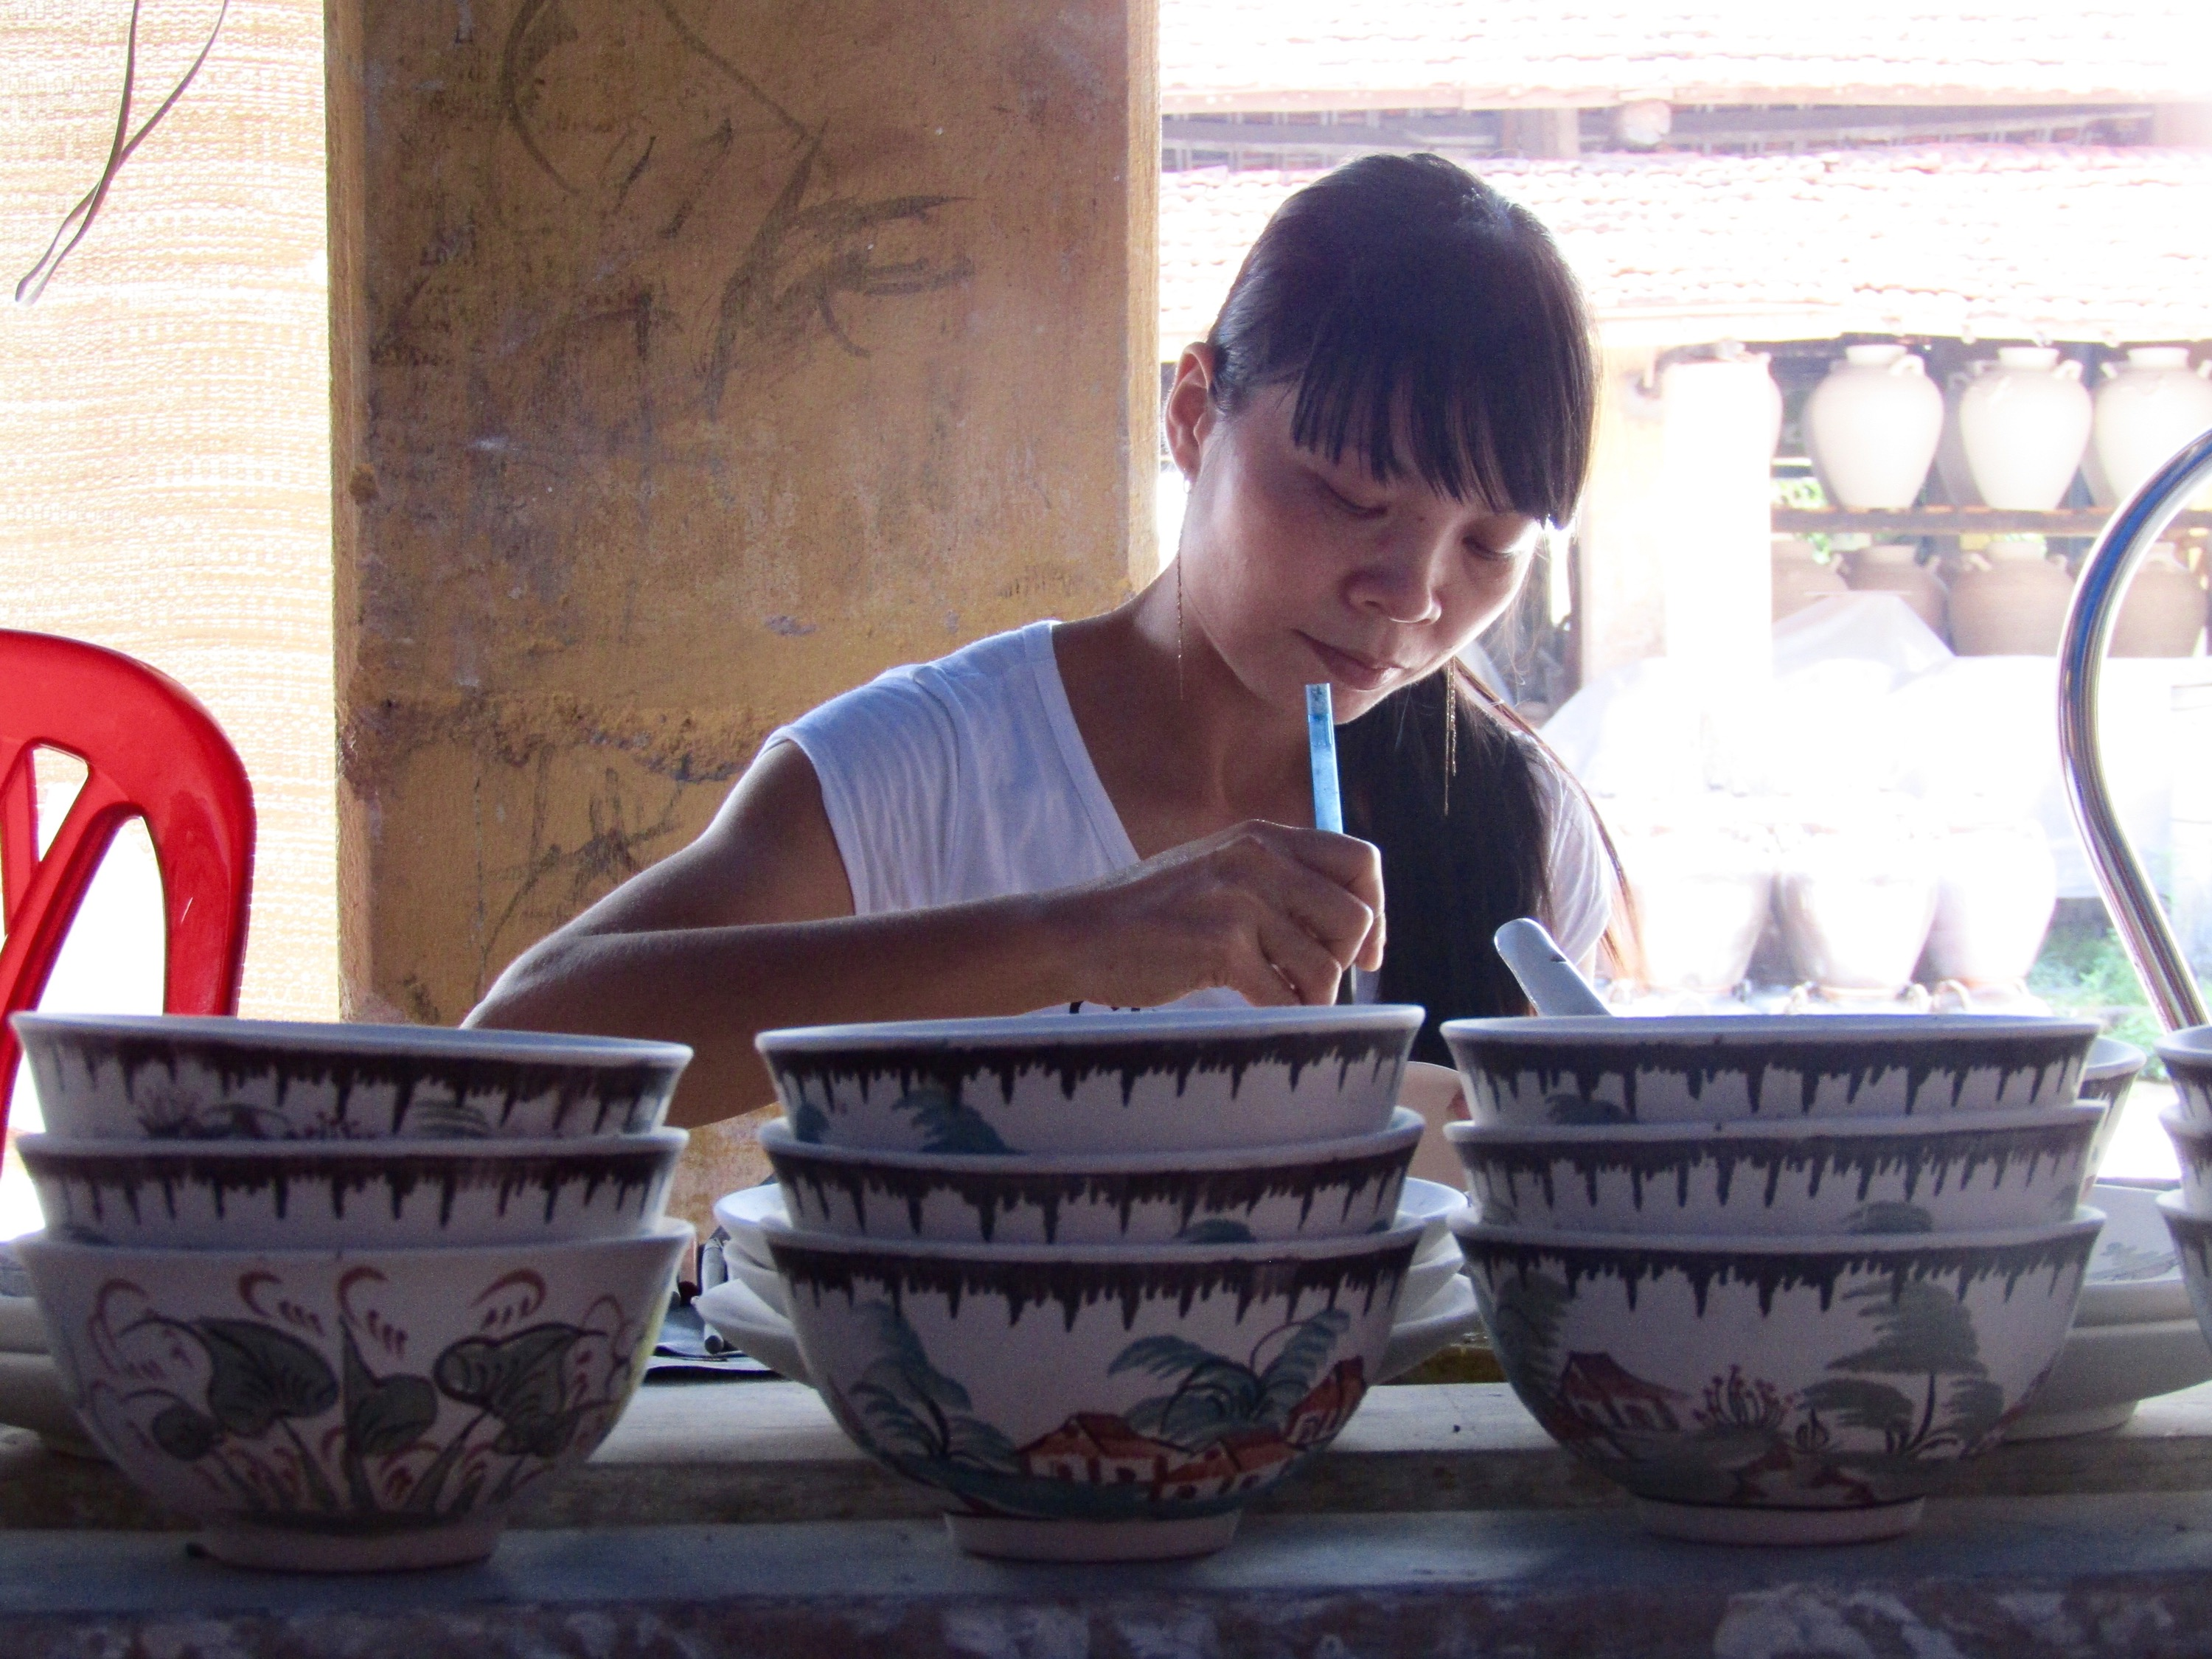 Inside, a woman puts the finishing touches on one of the ceramic bowls. She worked quickly and precisely, creating a unique scene on each piece.